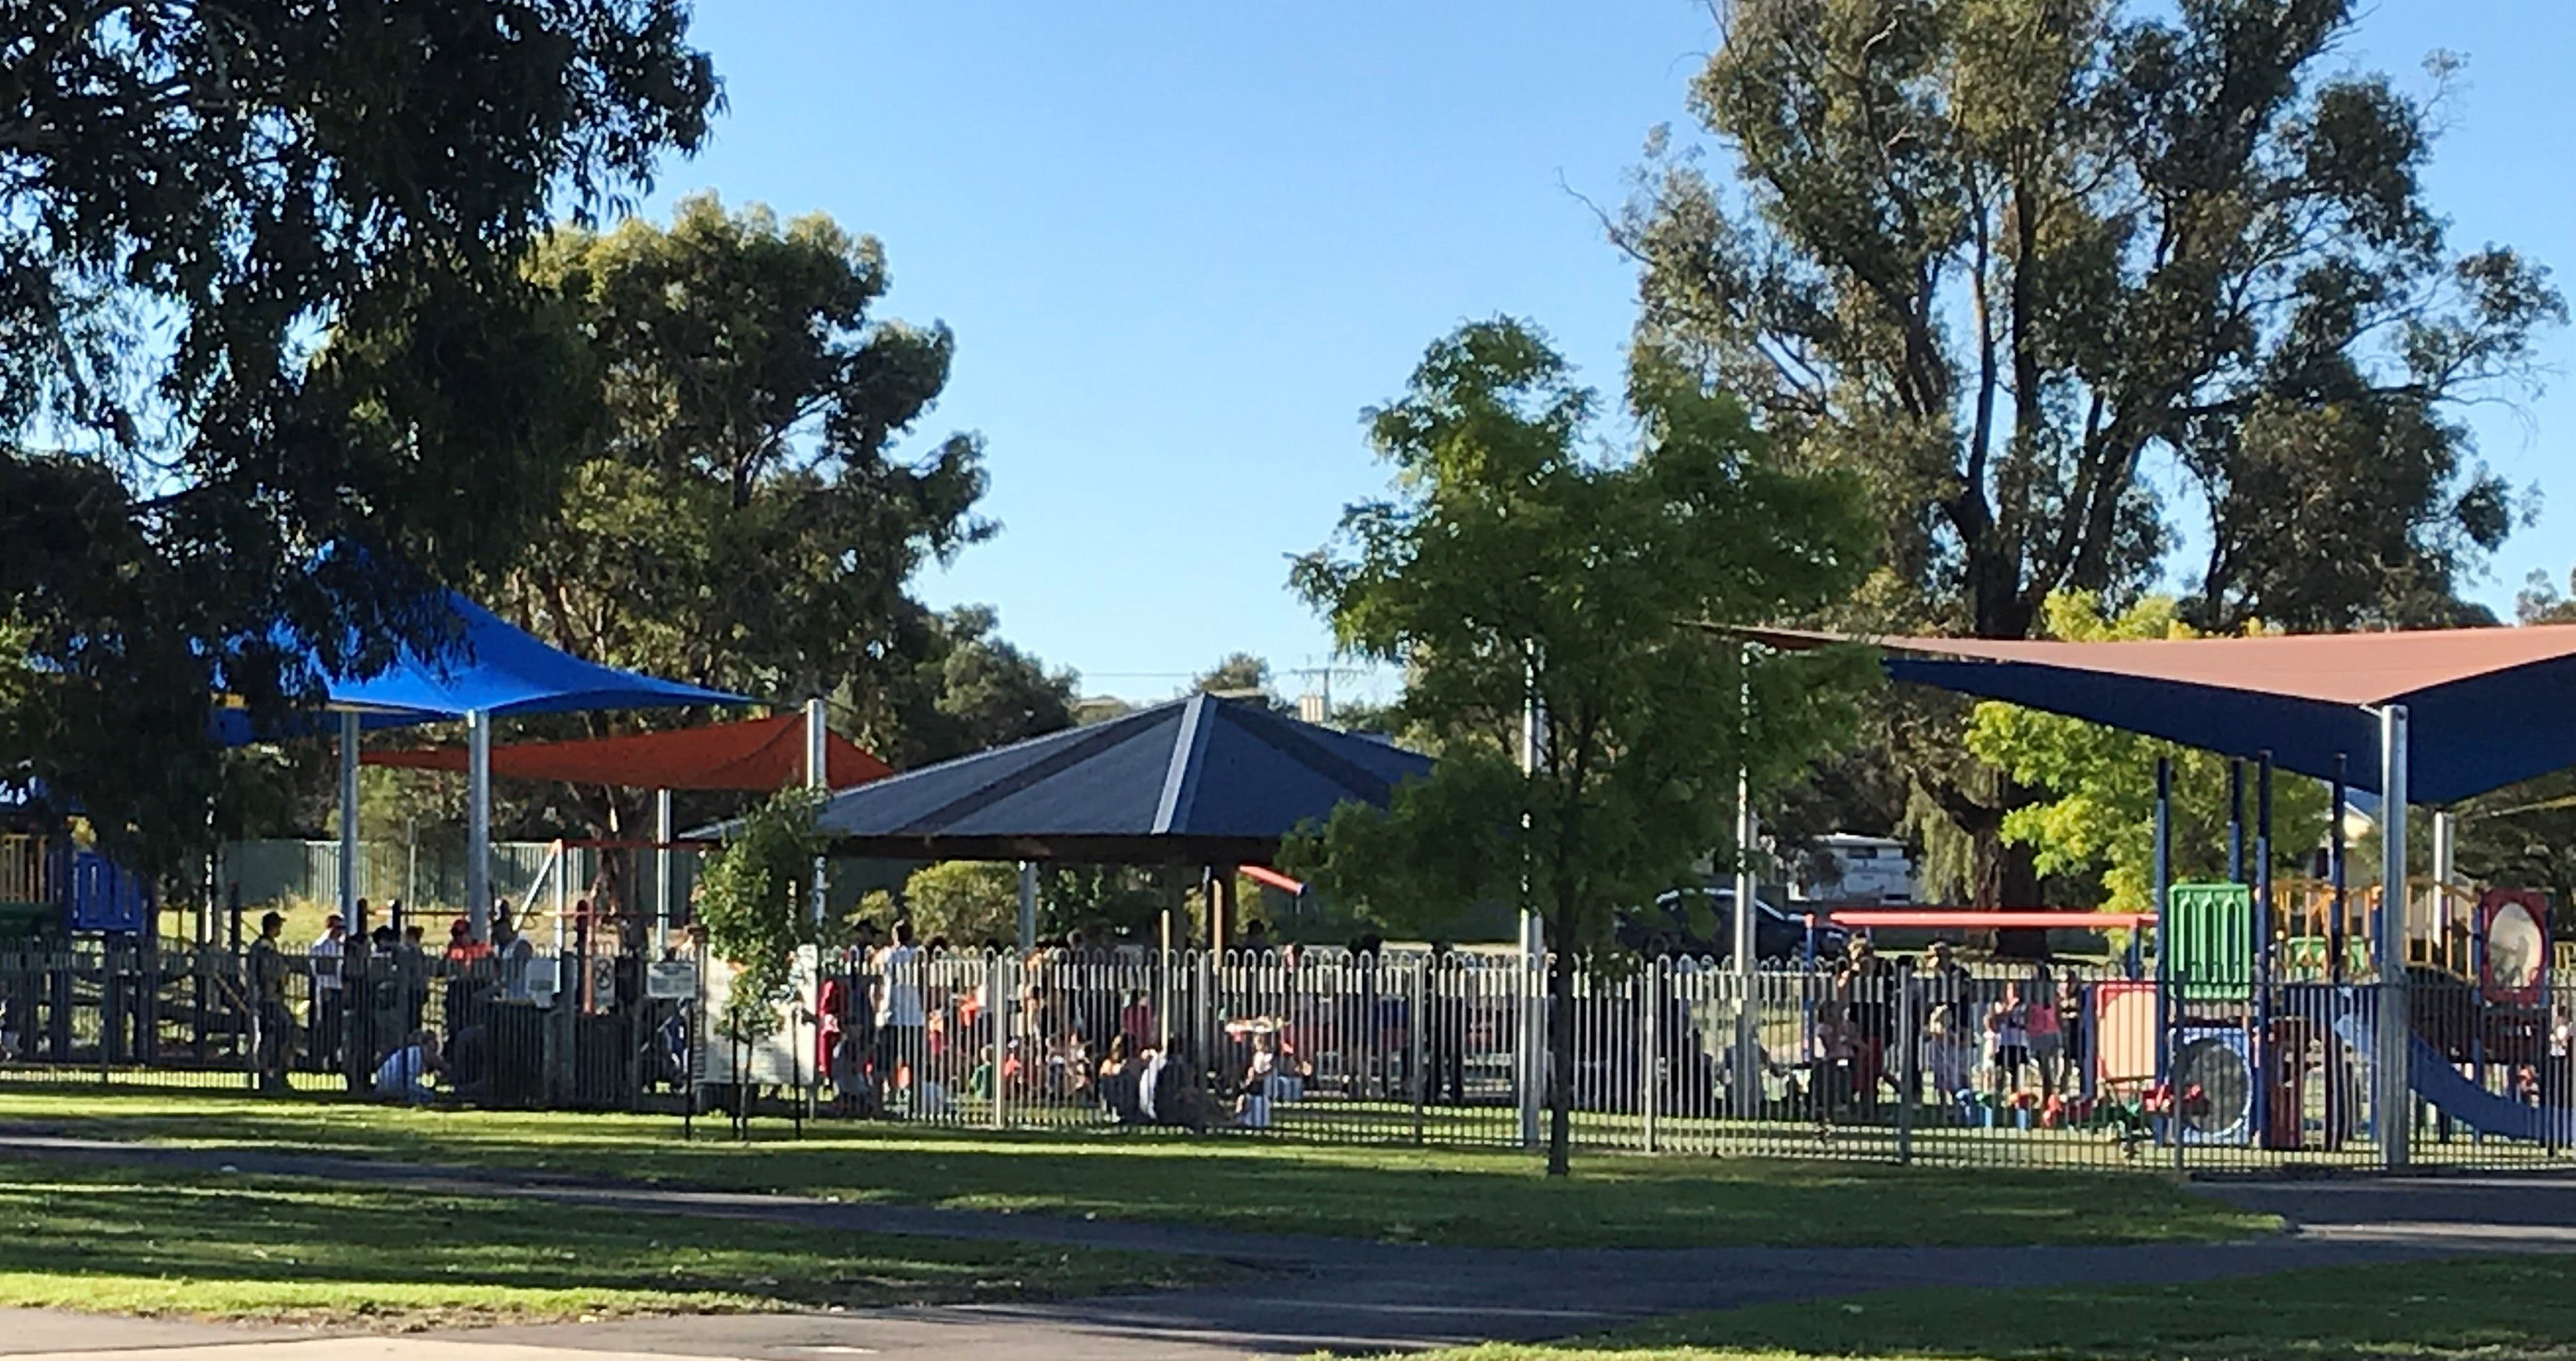 Market Square Recreation Area - Accommodation in Bendigo